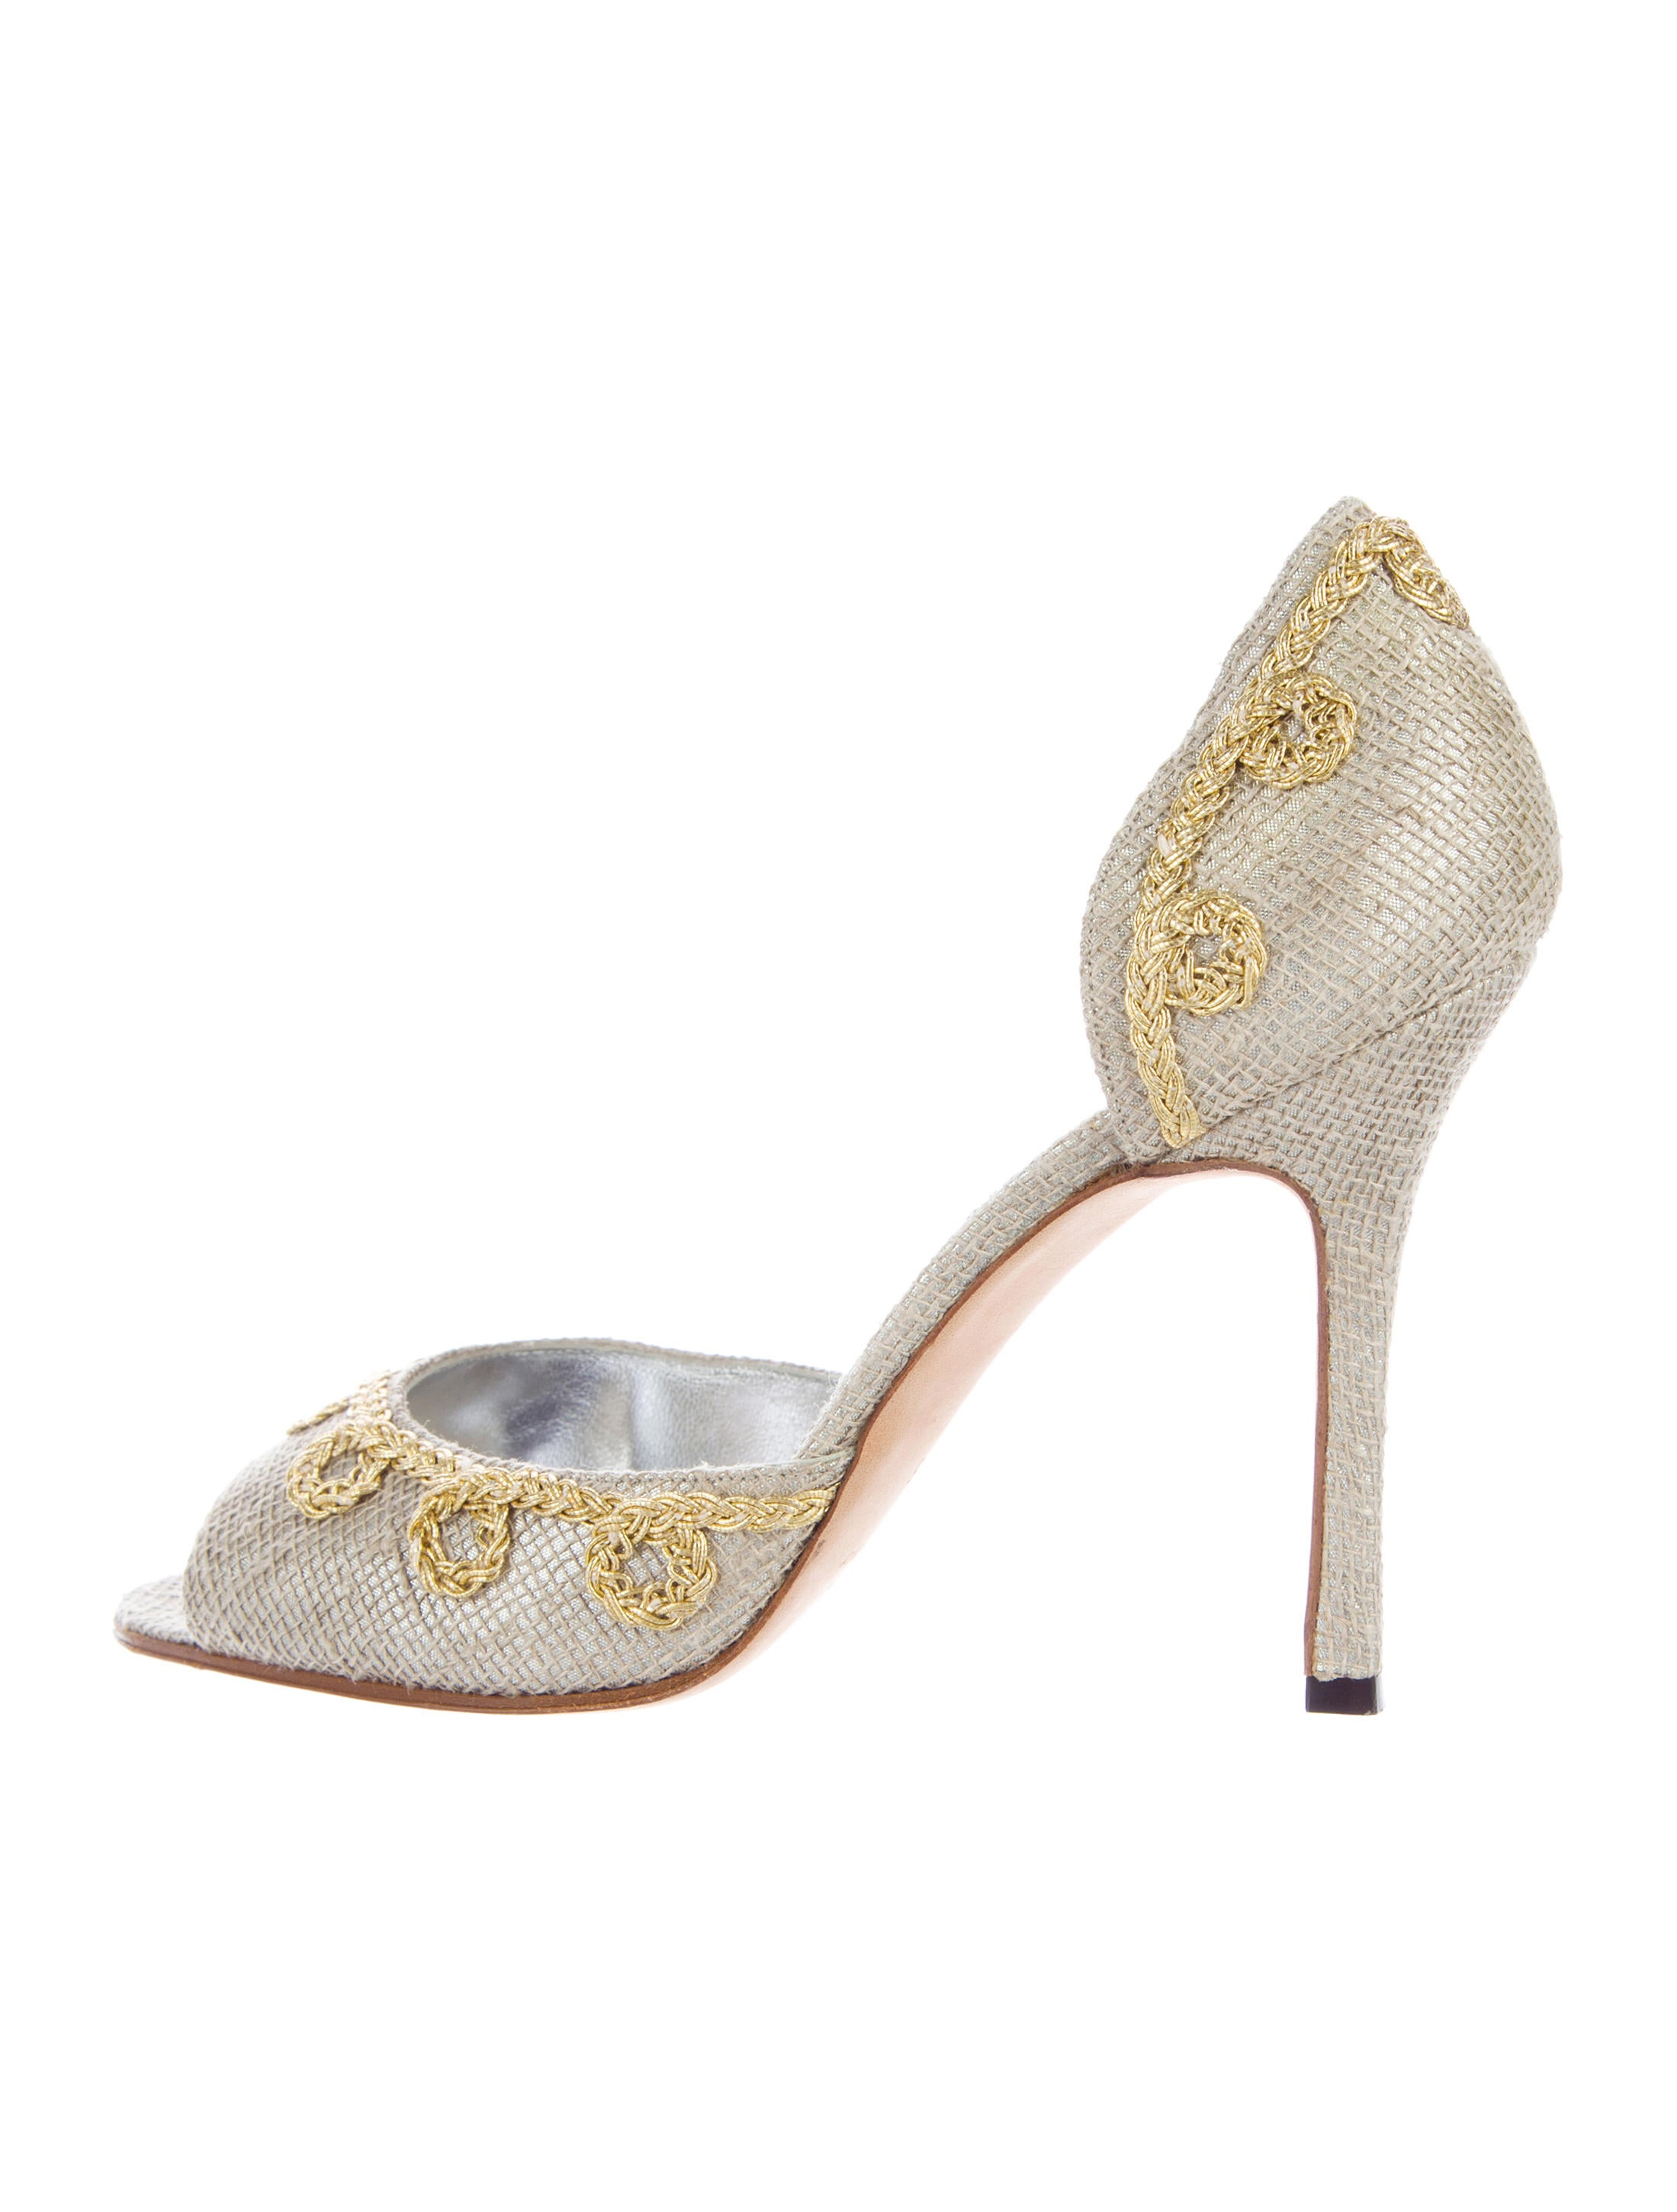 clearance sale online Manolo Blahnik Woven d'Orsay Pumps outlet collections RobDsl2UZo